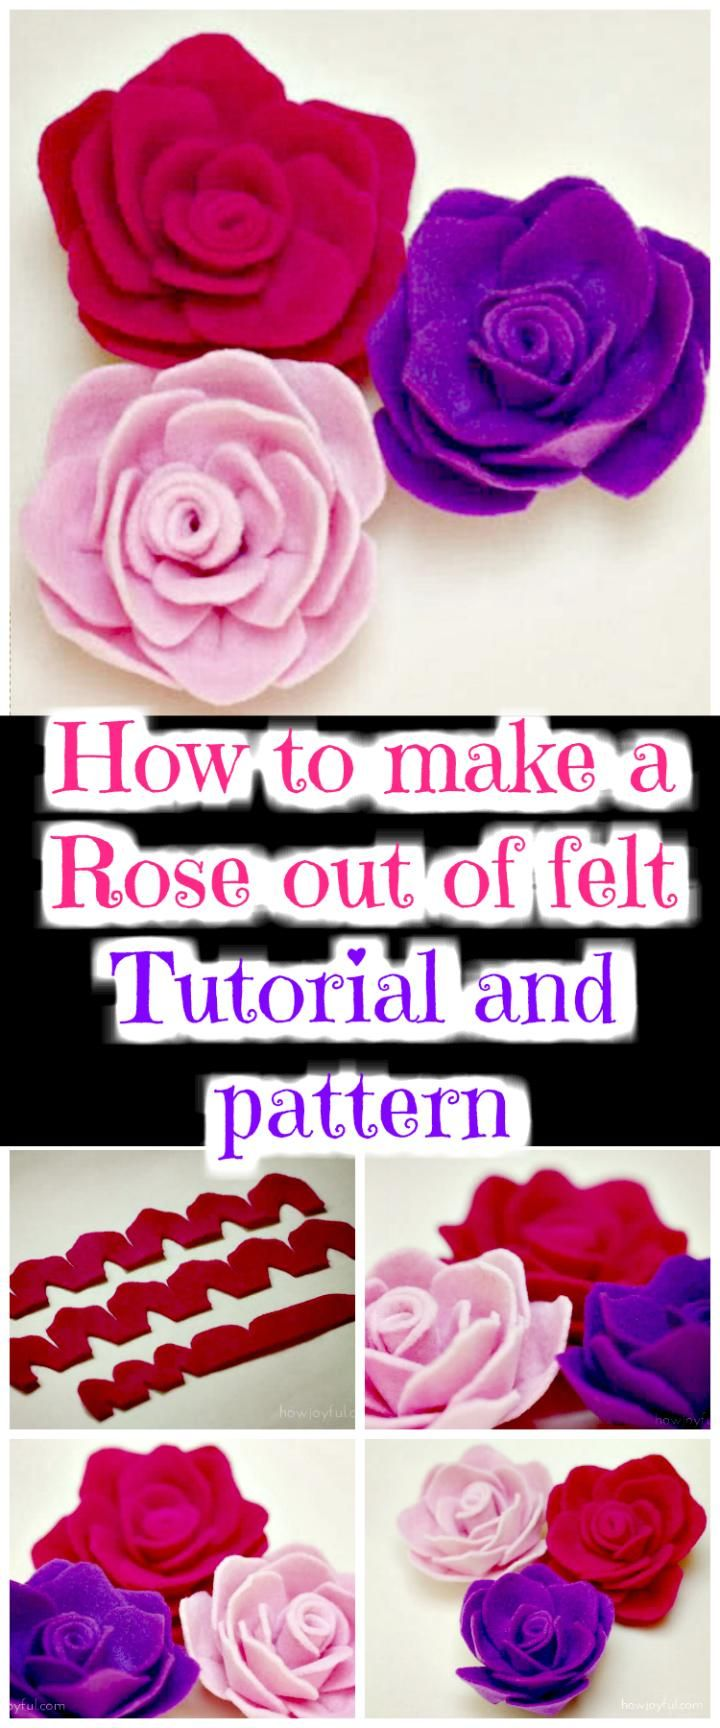 How to make a Rose Out of Felt – Tutorial and Pattern - 50 Easy Fabric Flowers Tutorial - Make Your Own Fabric Flowers - DIY & Crafts